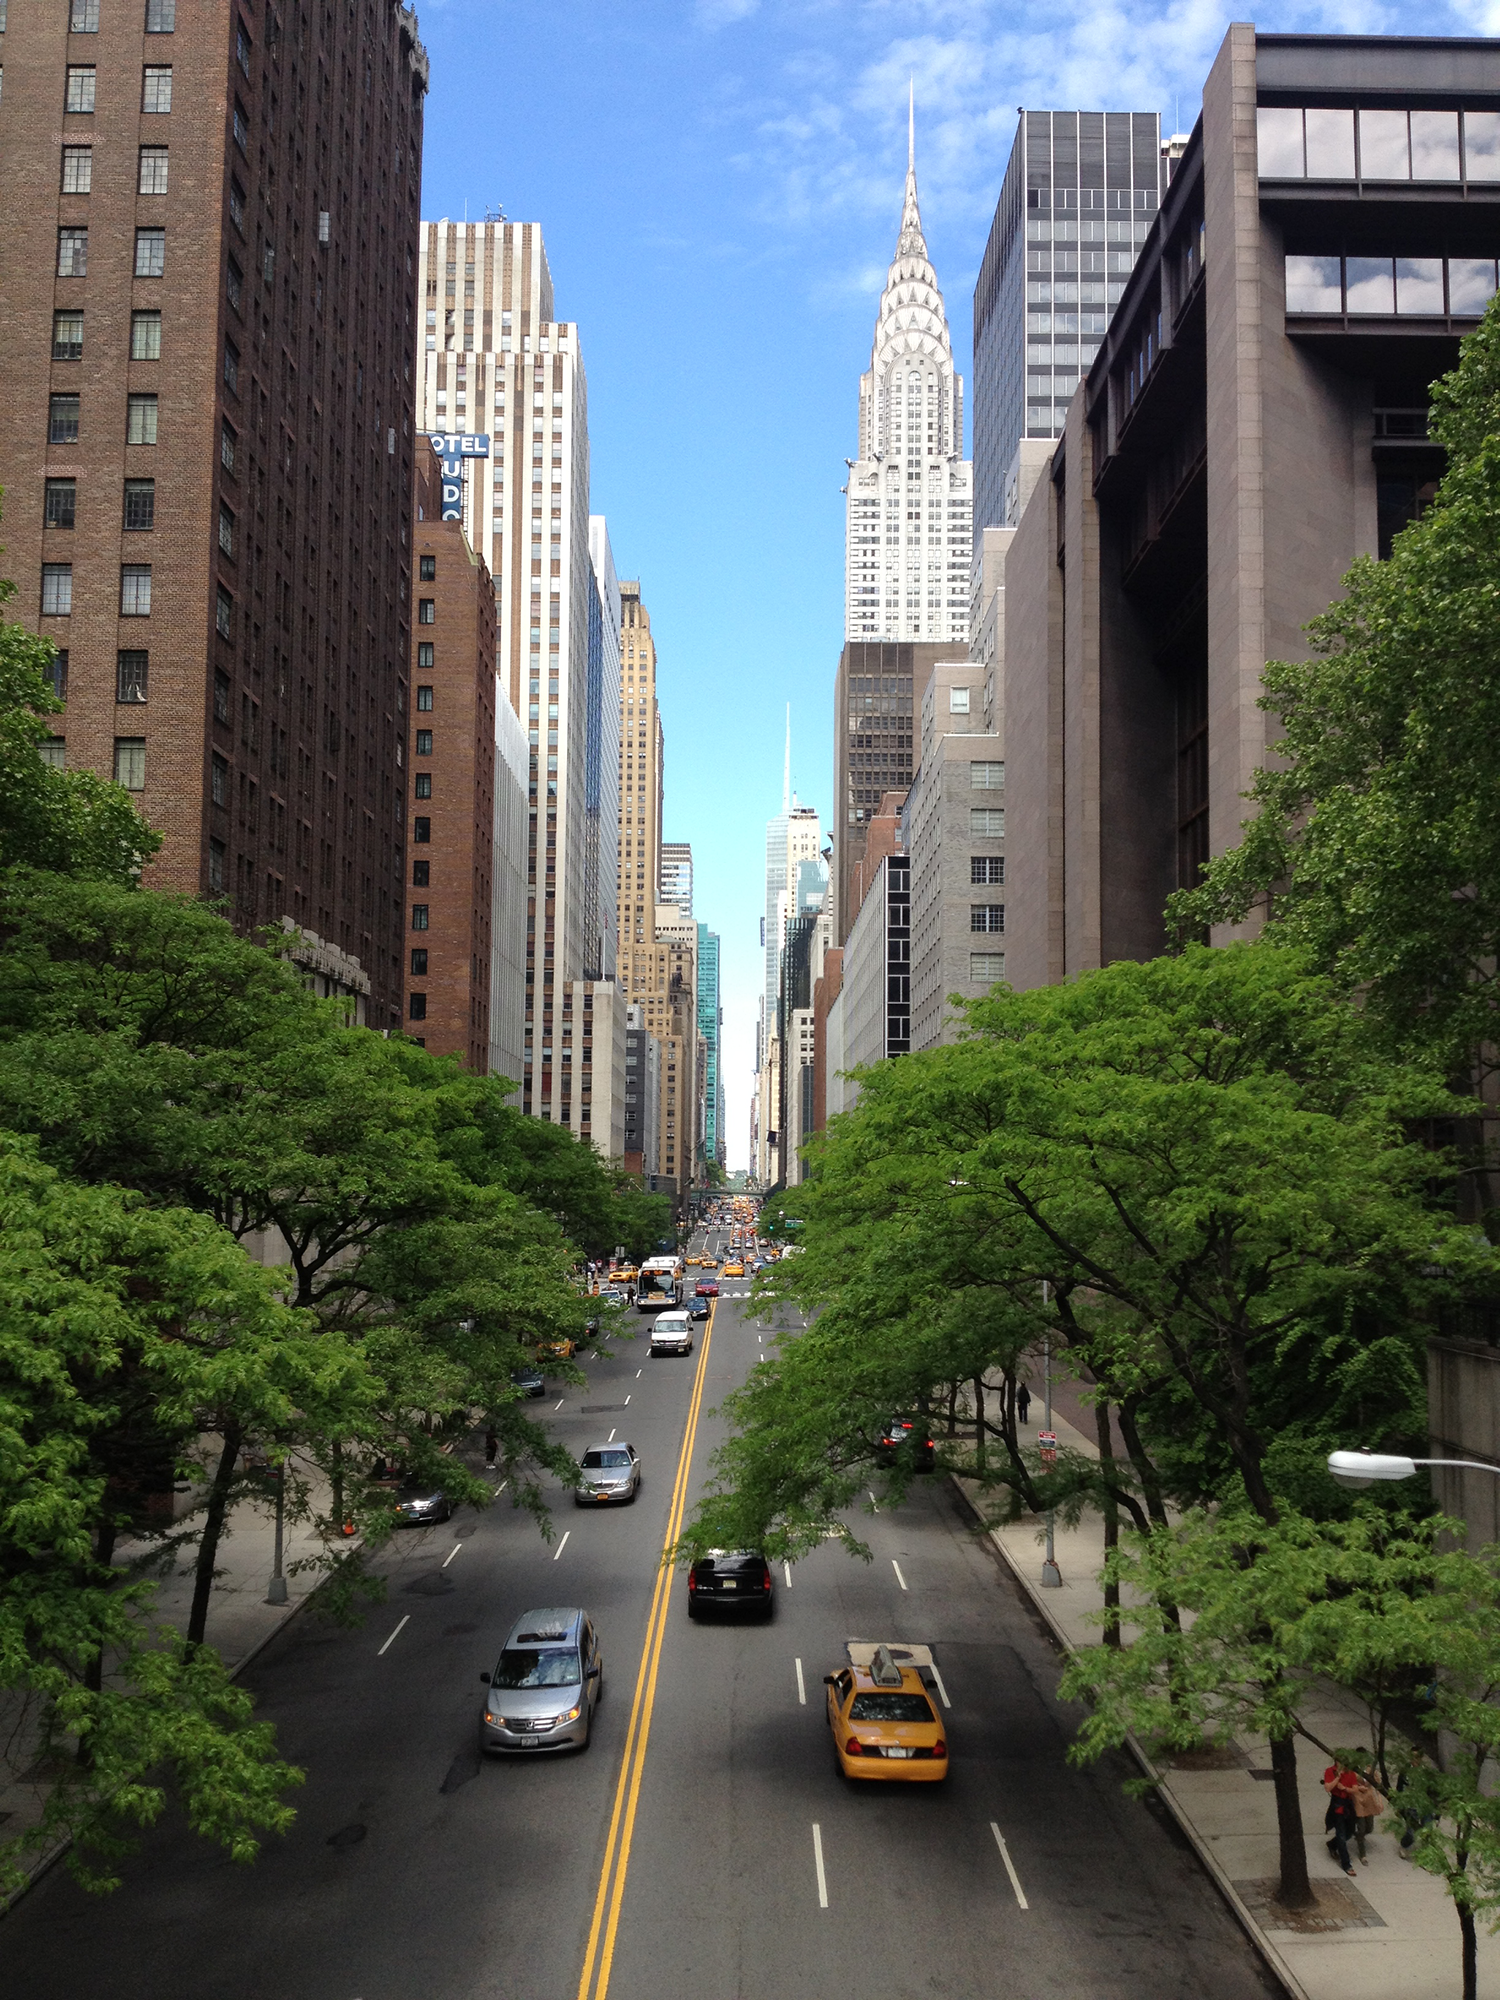 Drone view of a New York City street and cars heading uptown towards the Chrysler Building